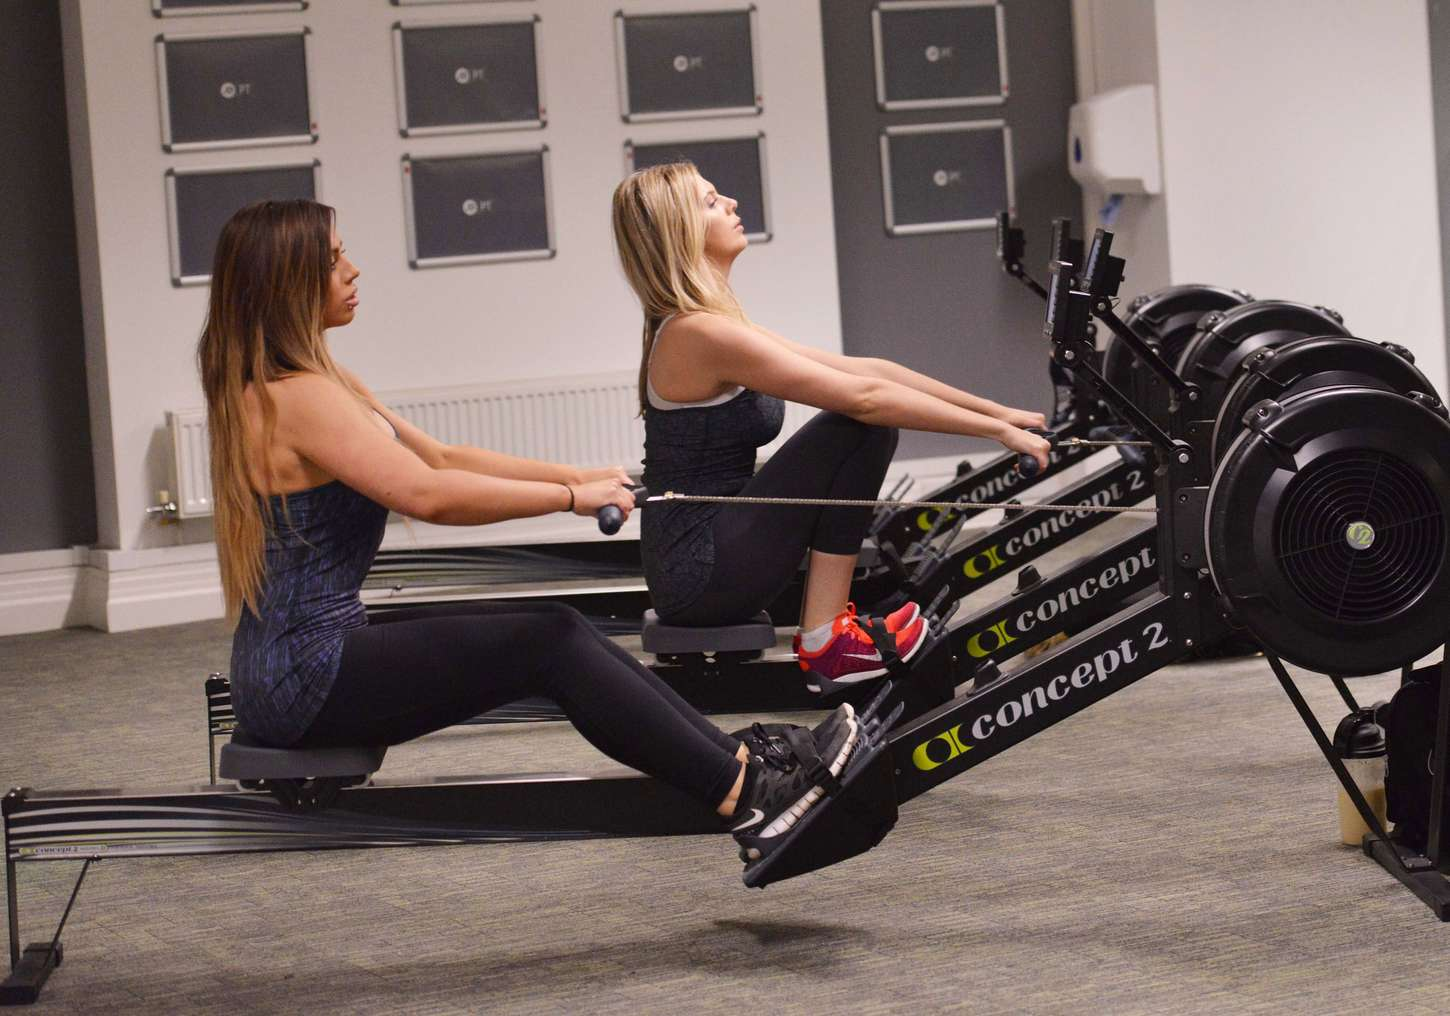 Holly hagan exercises in the gym 19 gotceleb for Gimnasio 19